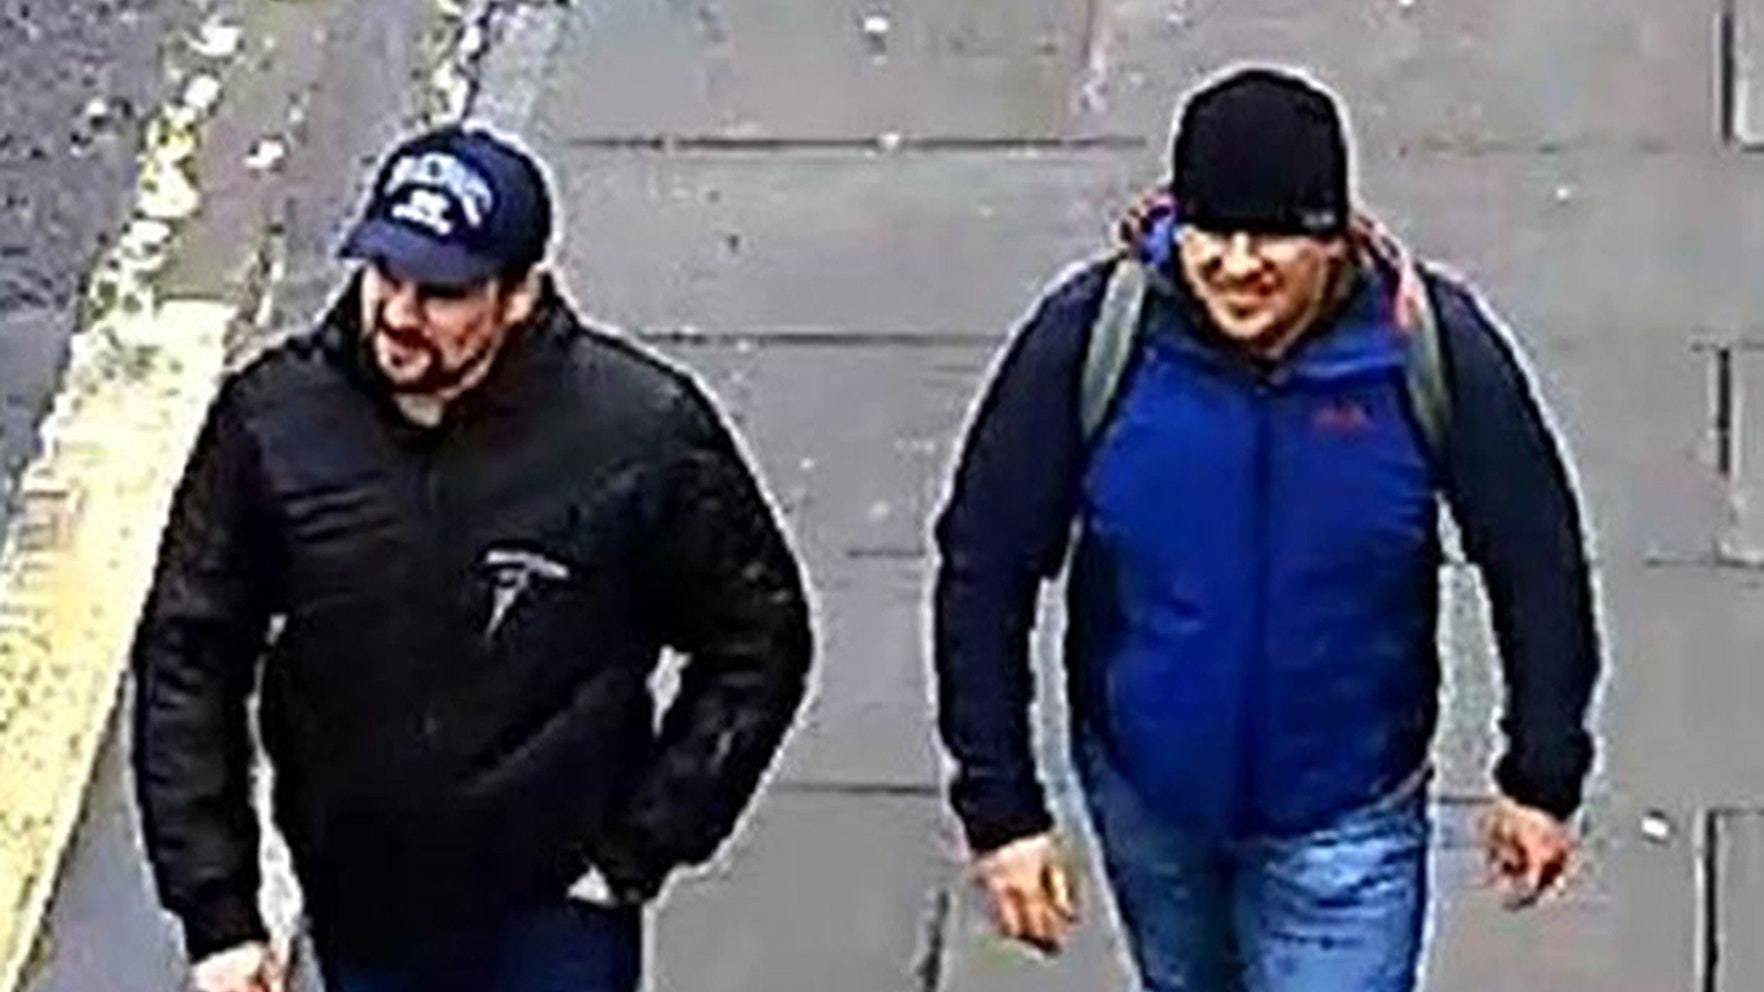 Suspects Ruslan Boshirov and Alexander Petrov